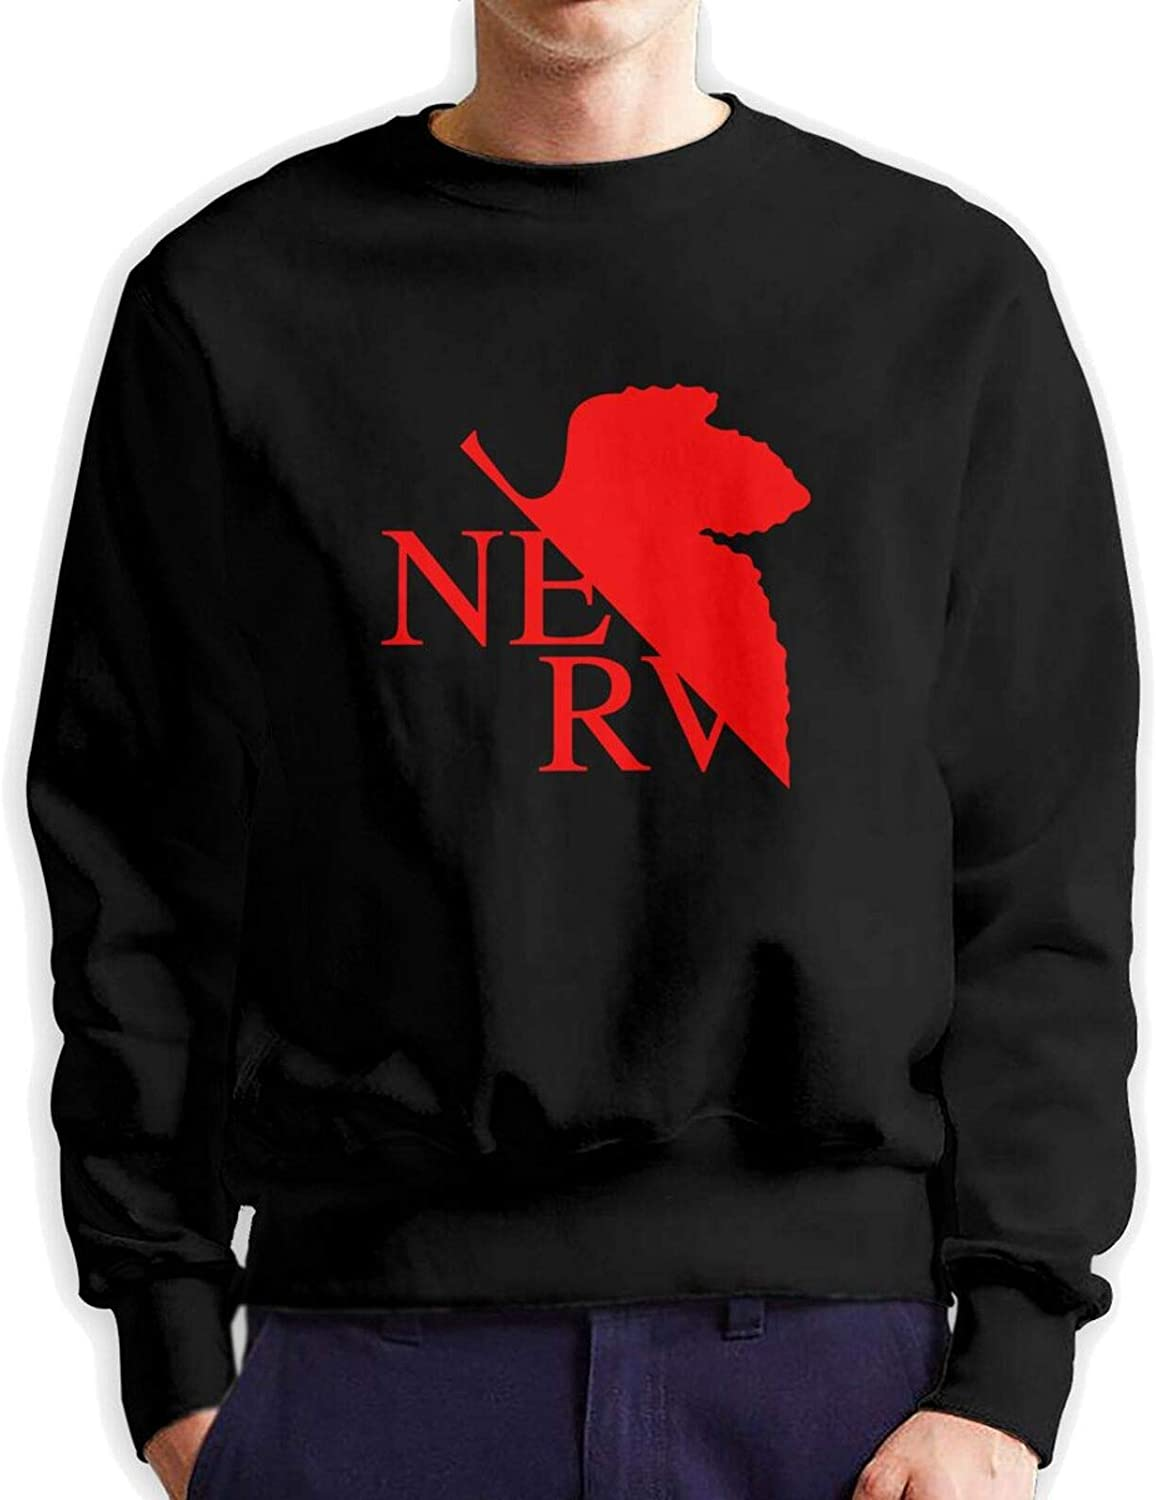 Grunged Nerv Memphis Mall Man Crew Neck Authentic Hooded Hoodie Sweate Recommendation Cotton